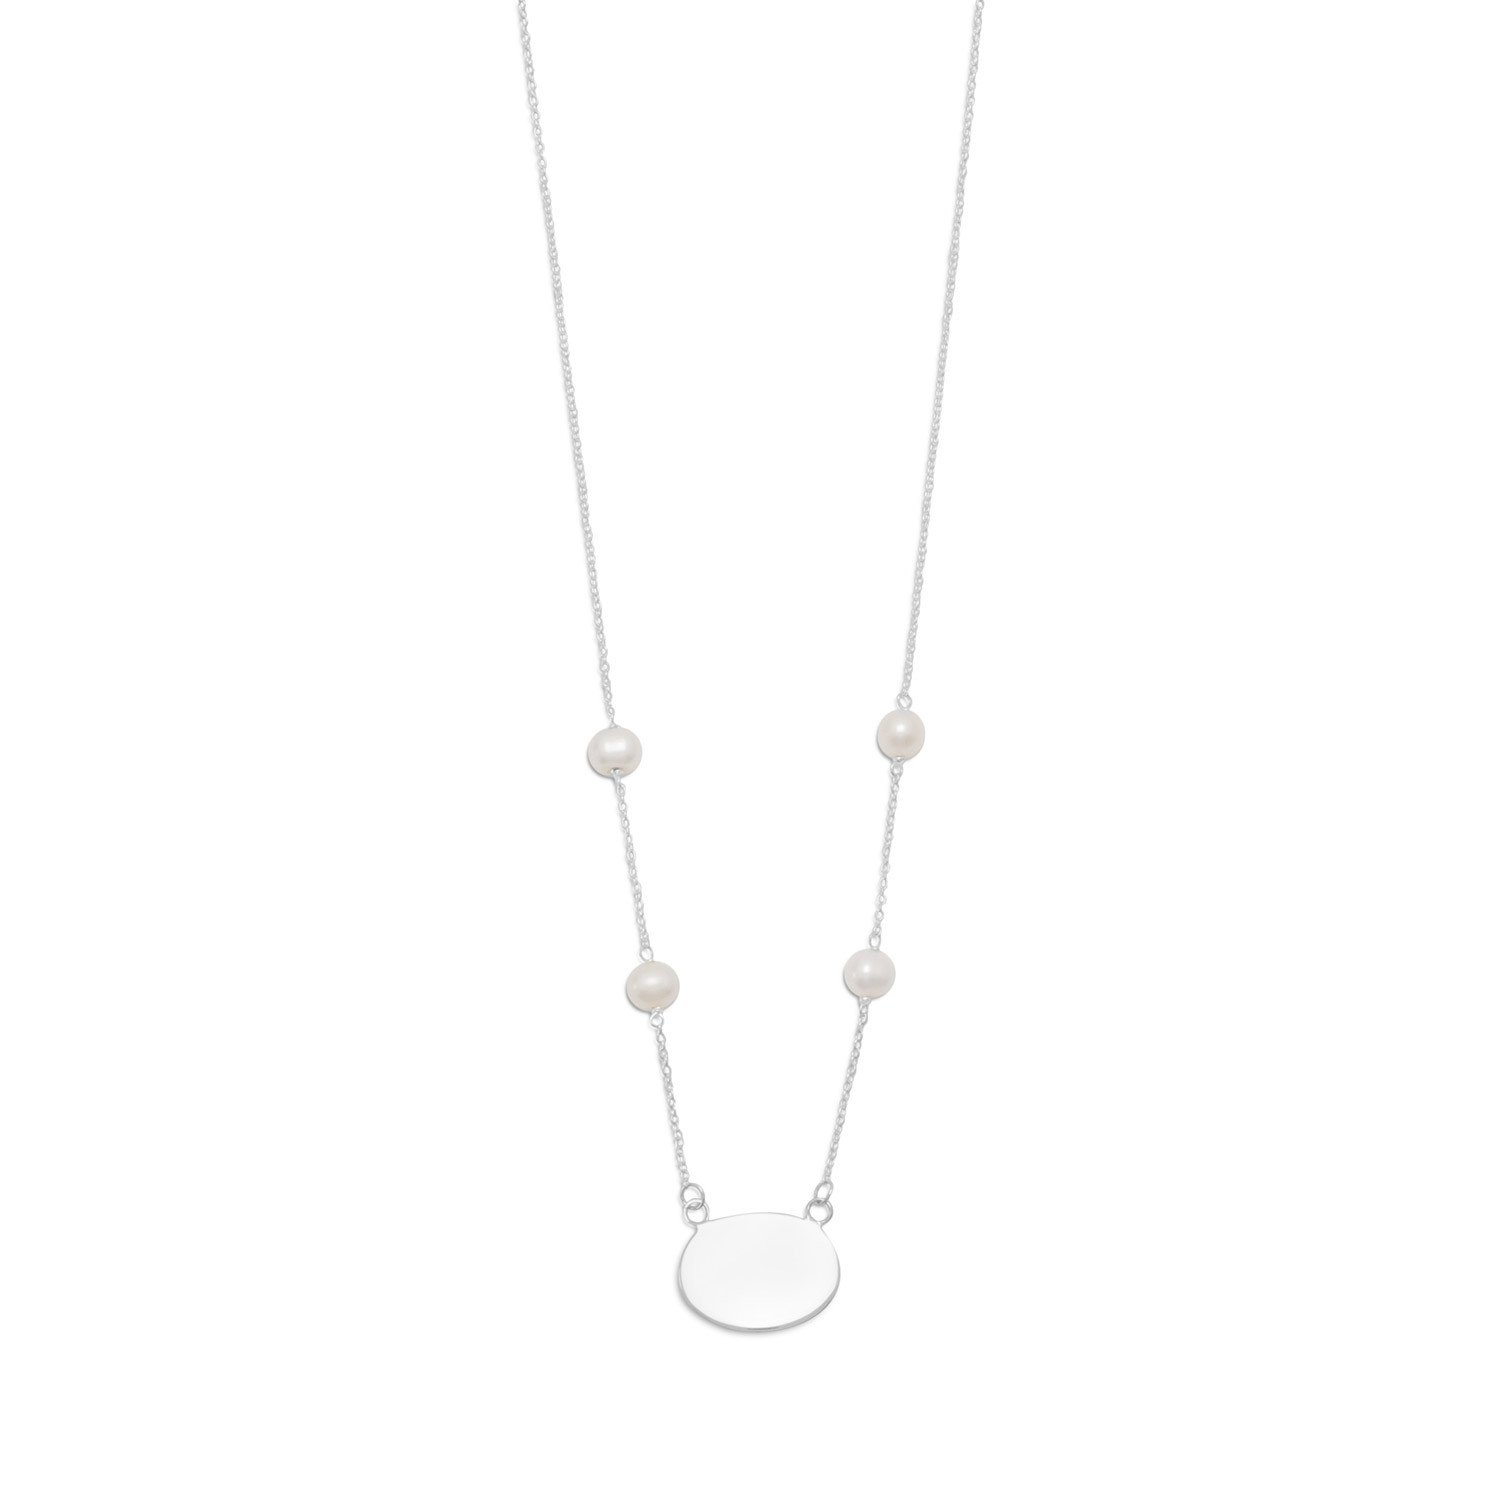 16″ ID Tag Necklace with White Cultured Freshwater Pearls